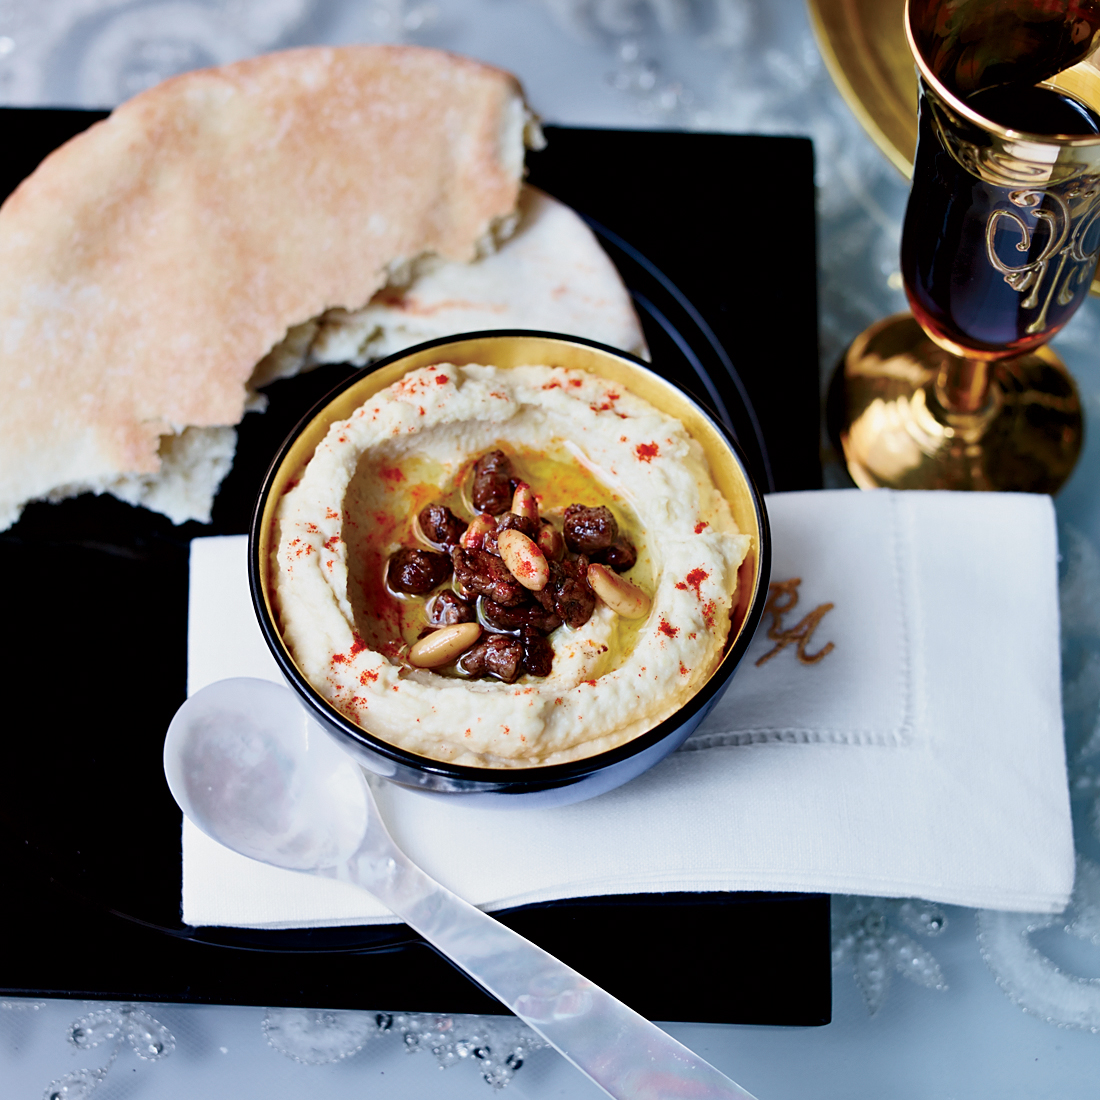 Hummus with Spiced Beef and Pine Nuts